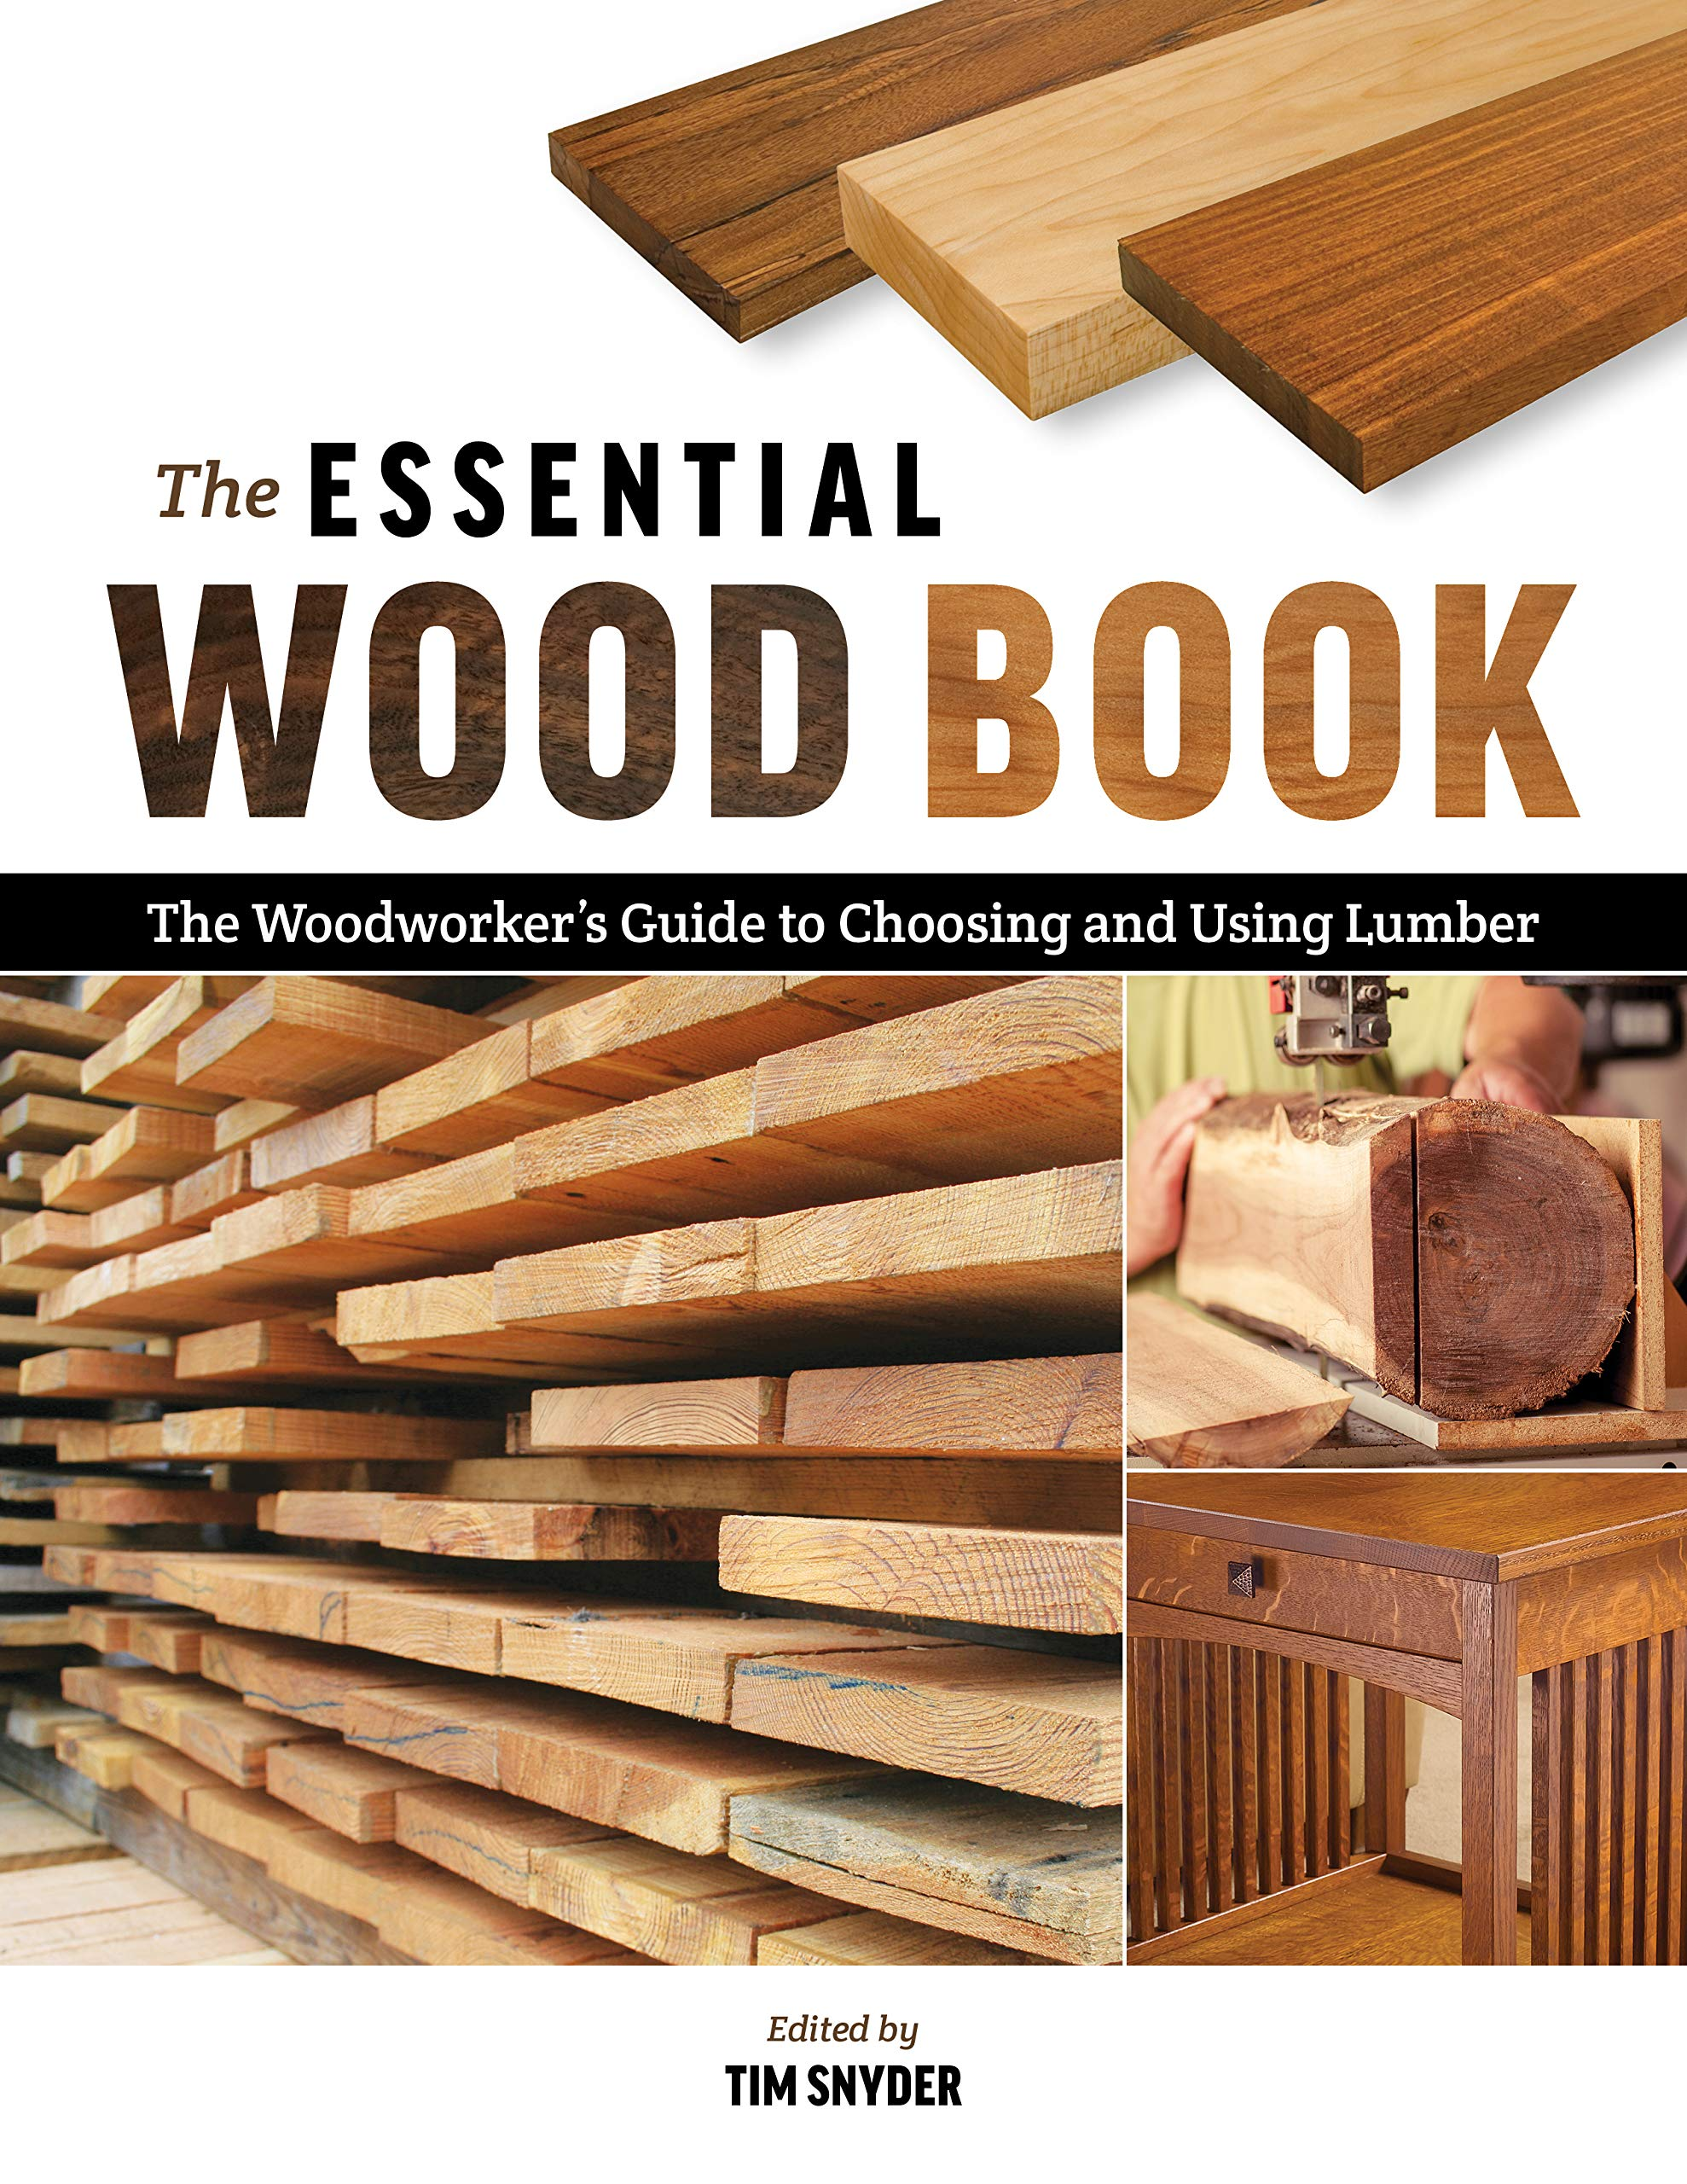 The Essential Wood Book The Woodworker S Guide To Choosing And Using Lumber Snyder Tim 9781940611372 Books